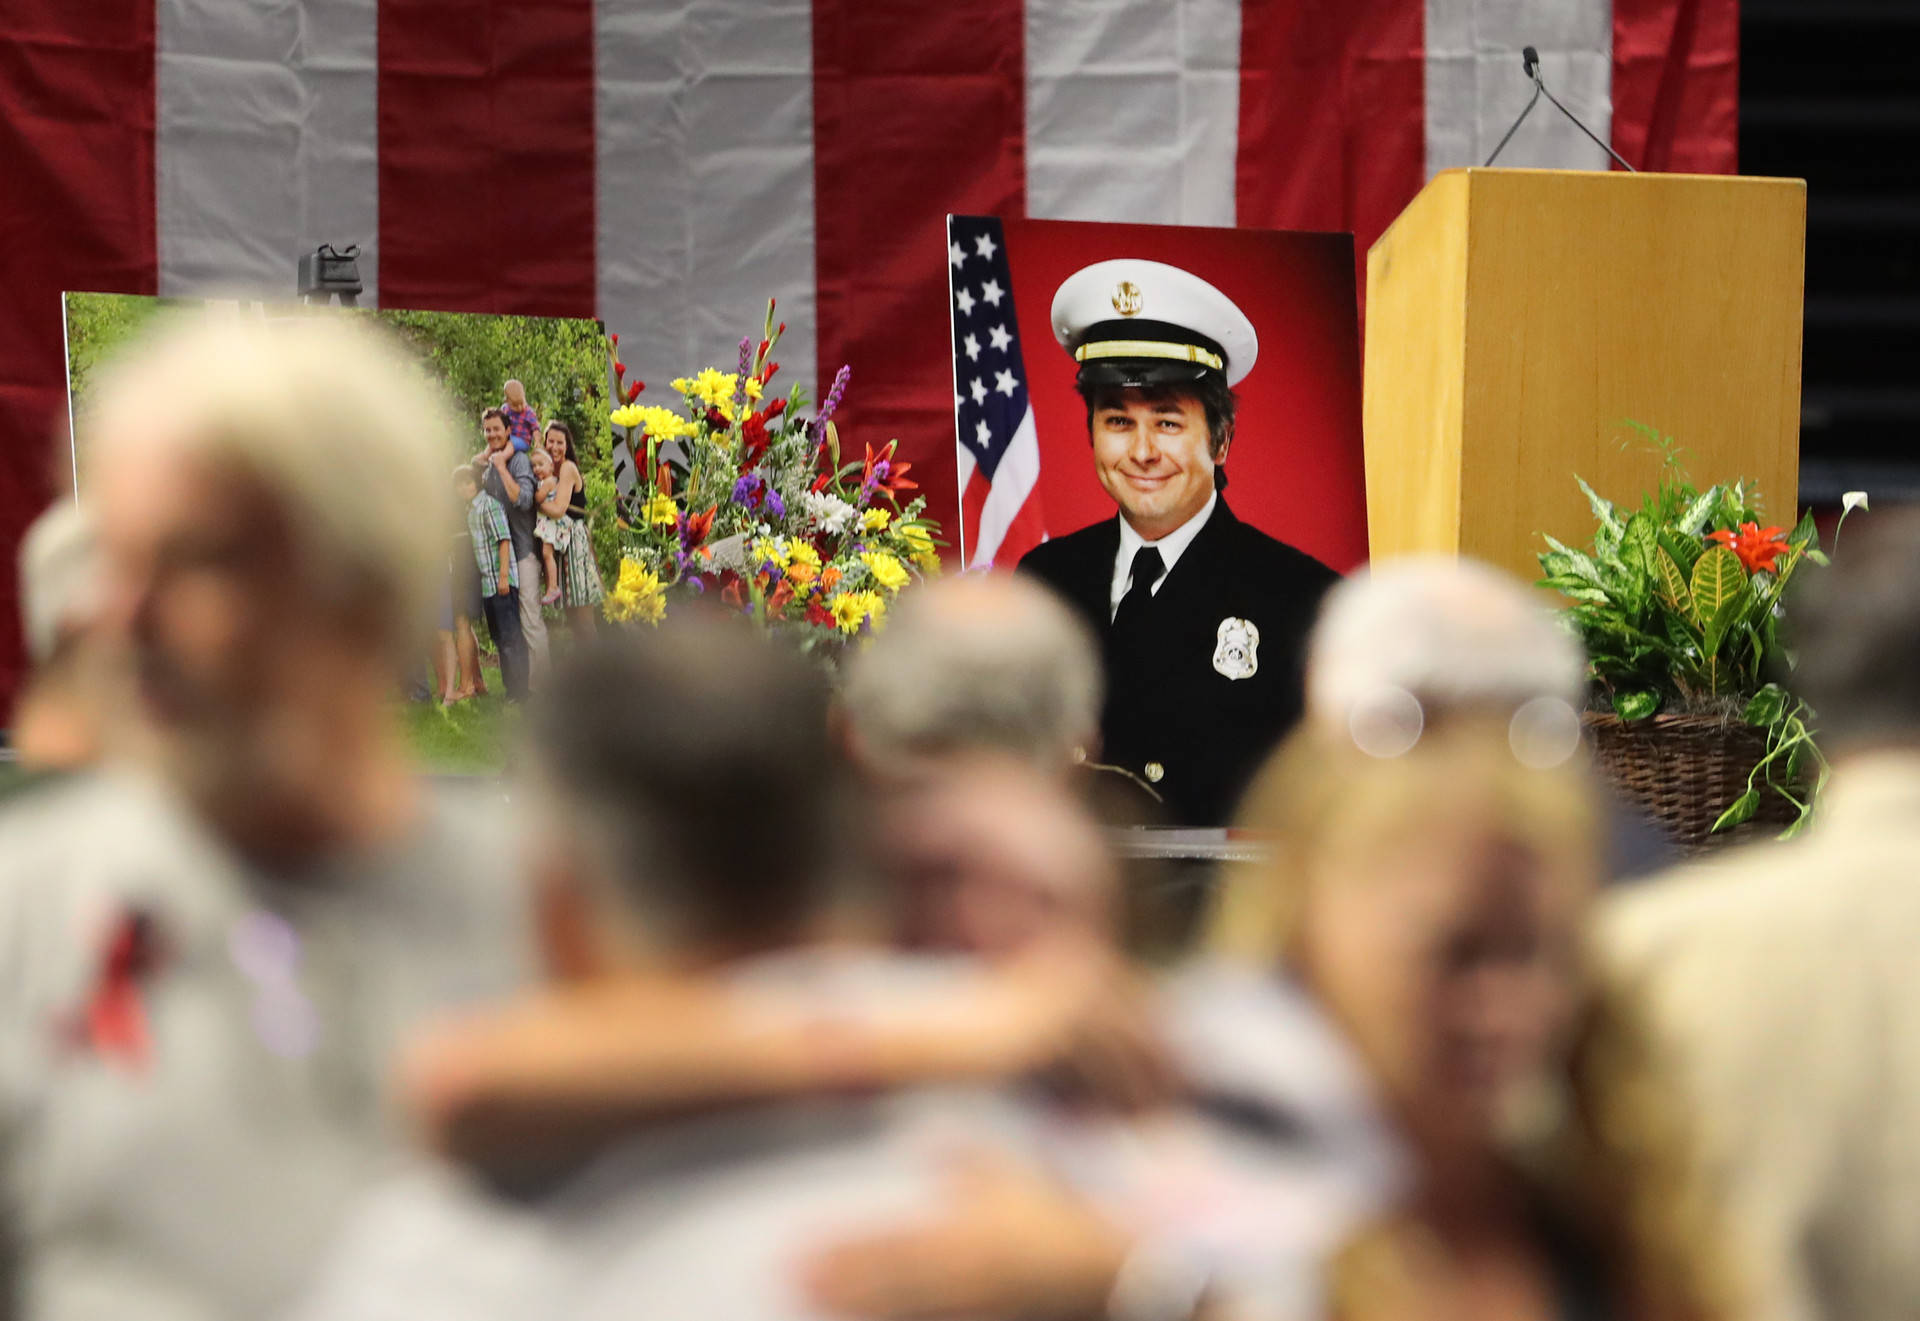 A picture of Battalion Chief Matthew David Burchett, sits on stage as mourners hug each other before his funeral at the Maverik Center on Aug., 20, 2018, in West Valley City, Utah. George Frey/Getty Images